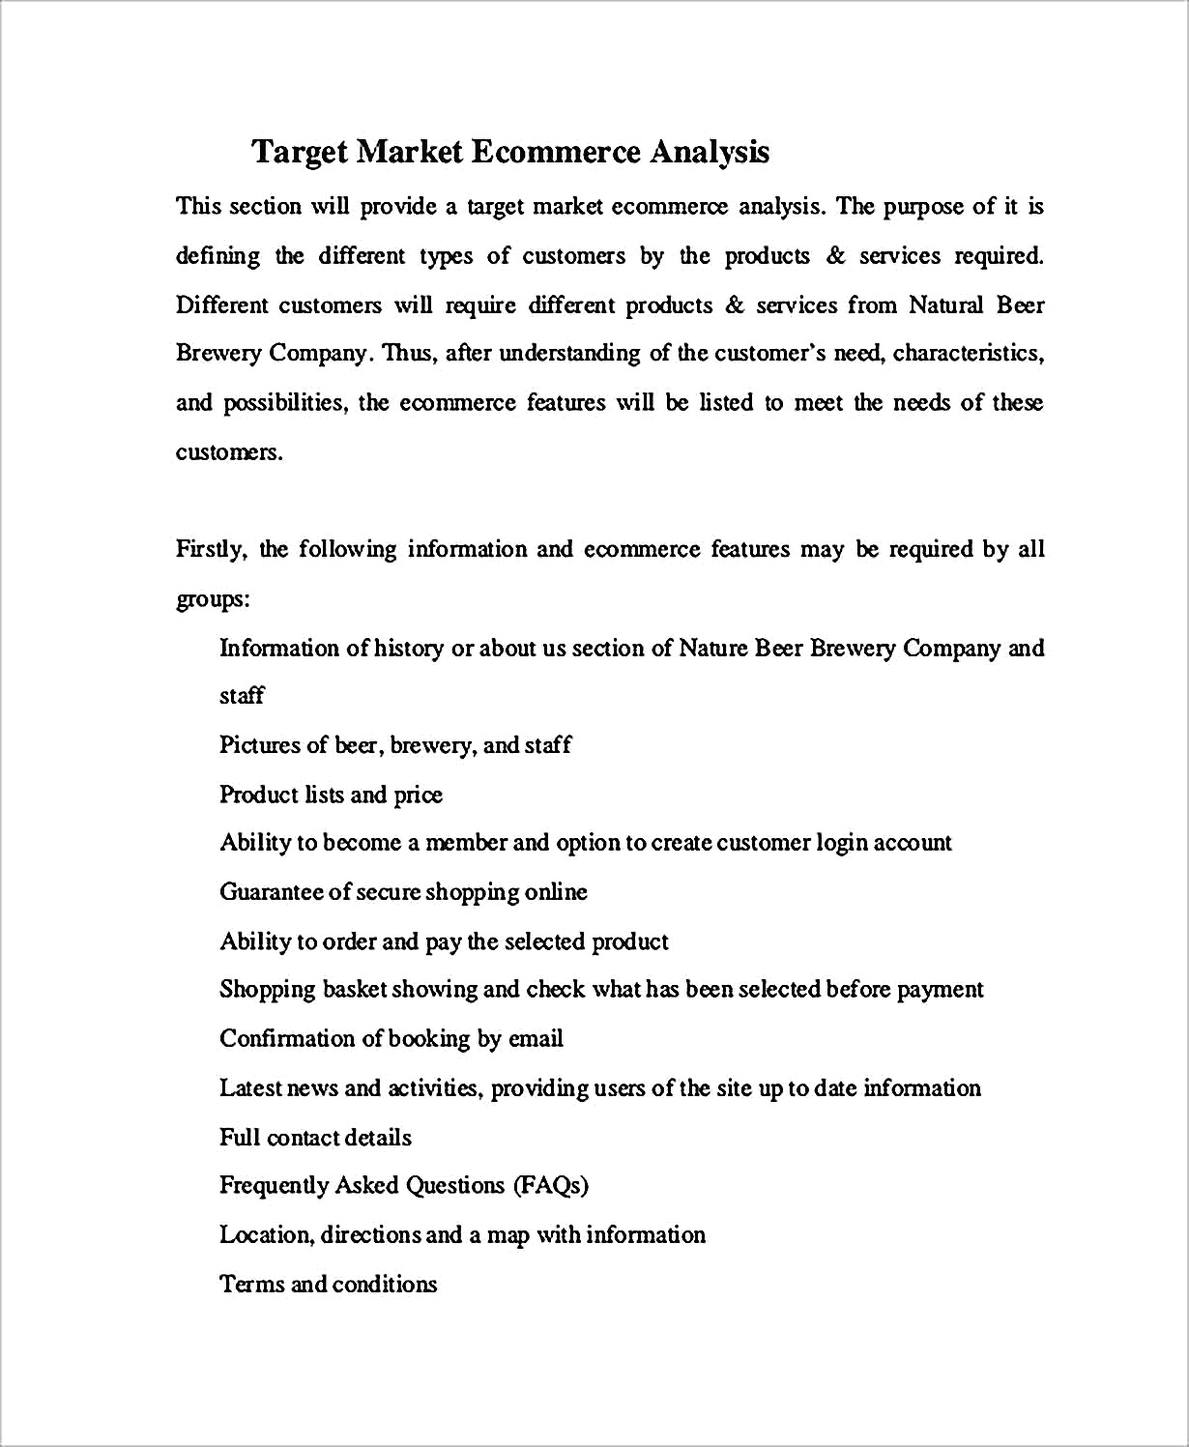 Templates for Target Market Ecommerce Analysis Sample